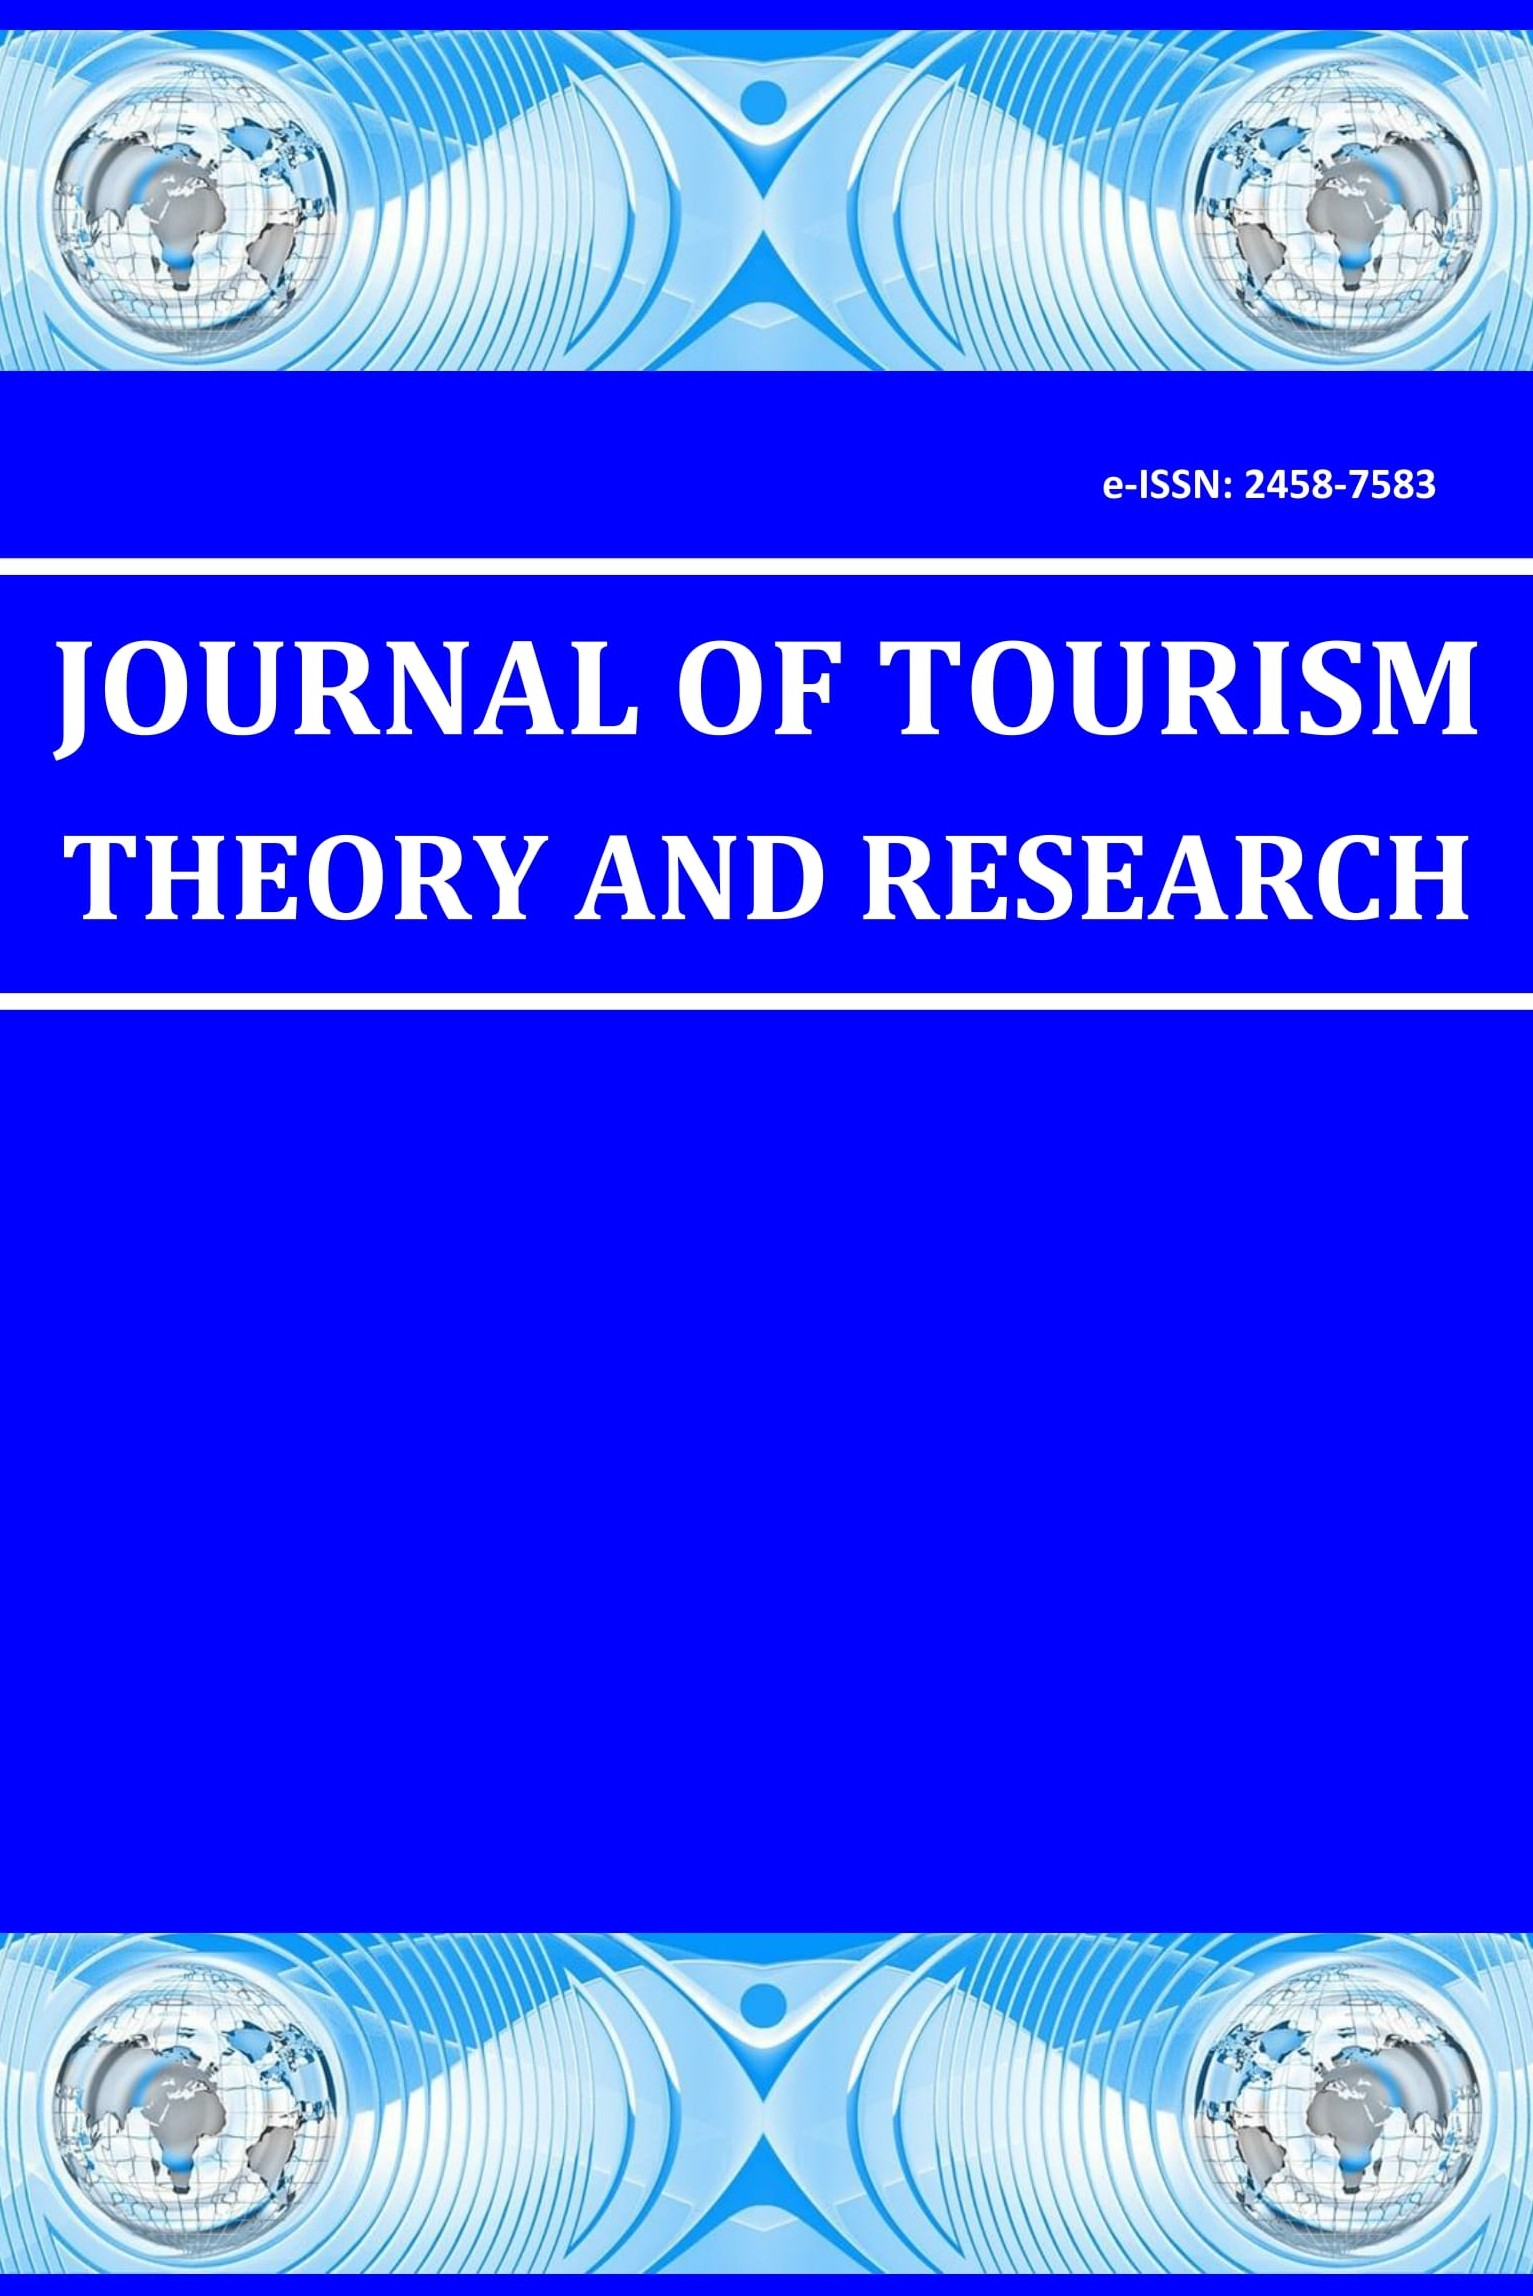 Journal of Tourism Theory and Research